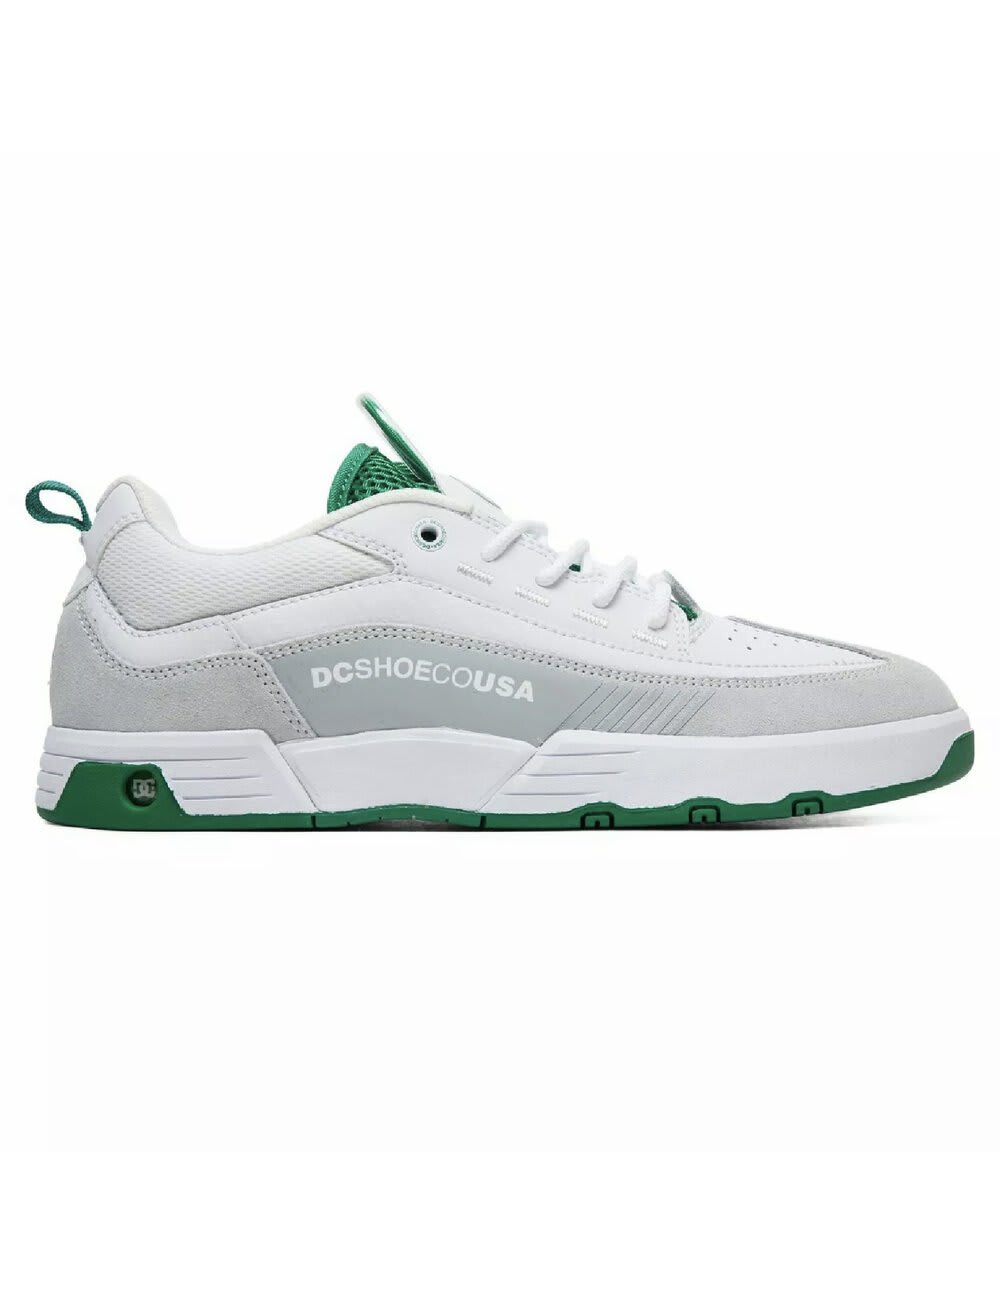 DC Shoes Legacy 98 Slim White/Green | Shoes by DC Shoes 1